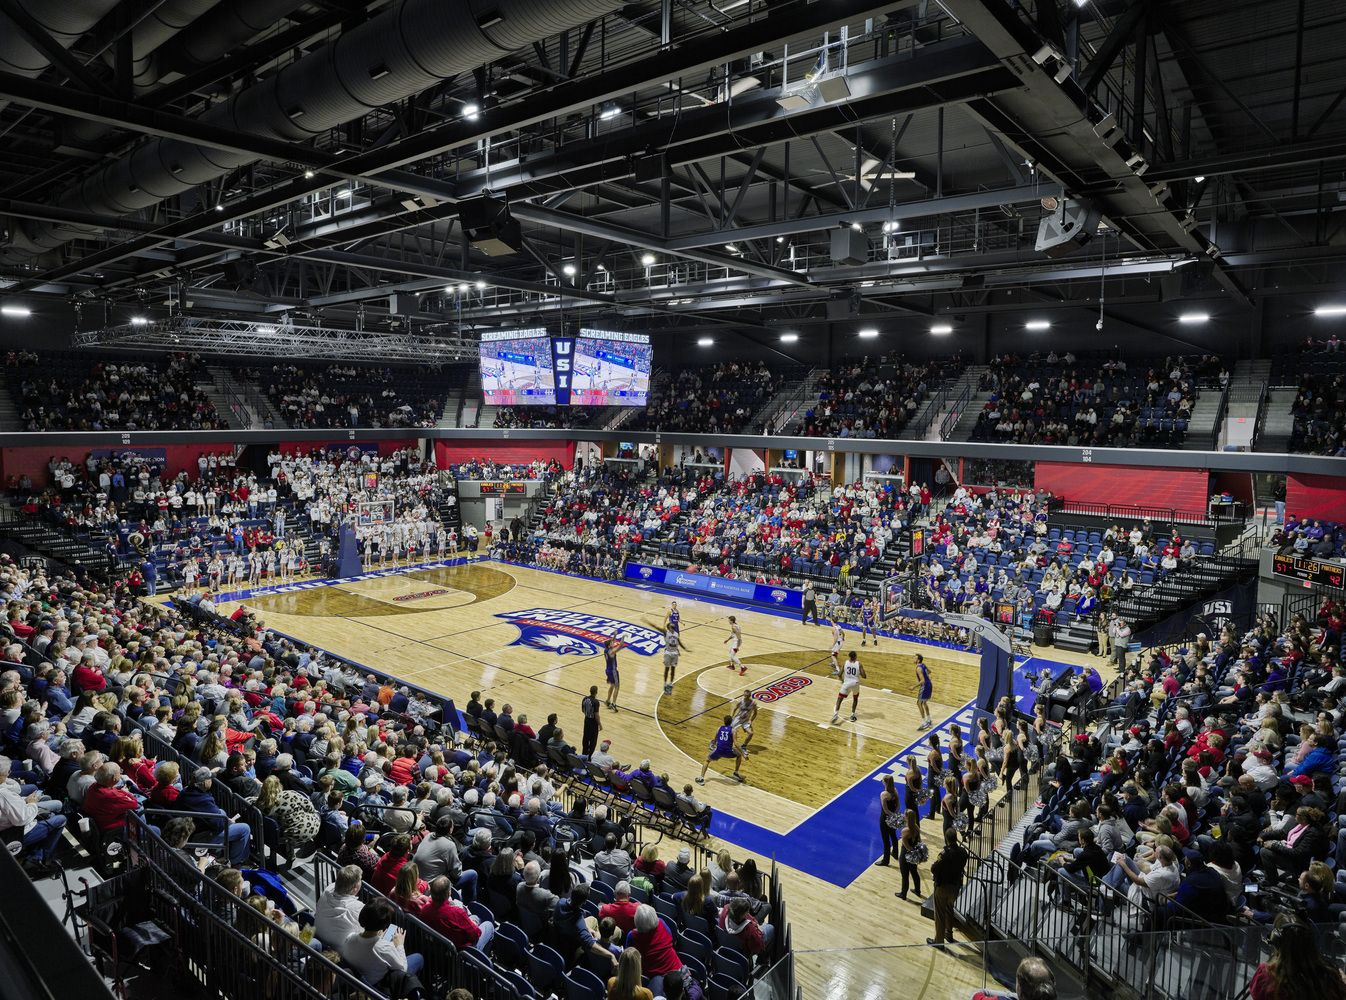 Gallery Of University Of Southern Indiana Screaming Eagles Arena Cannondesign 15 Stadium Design University Arena